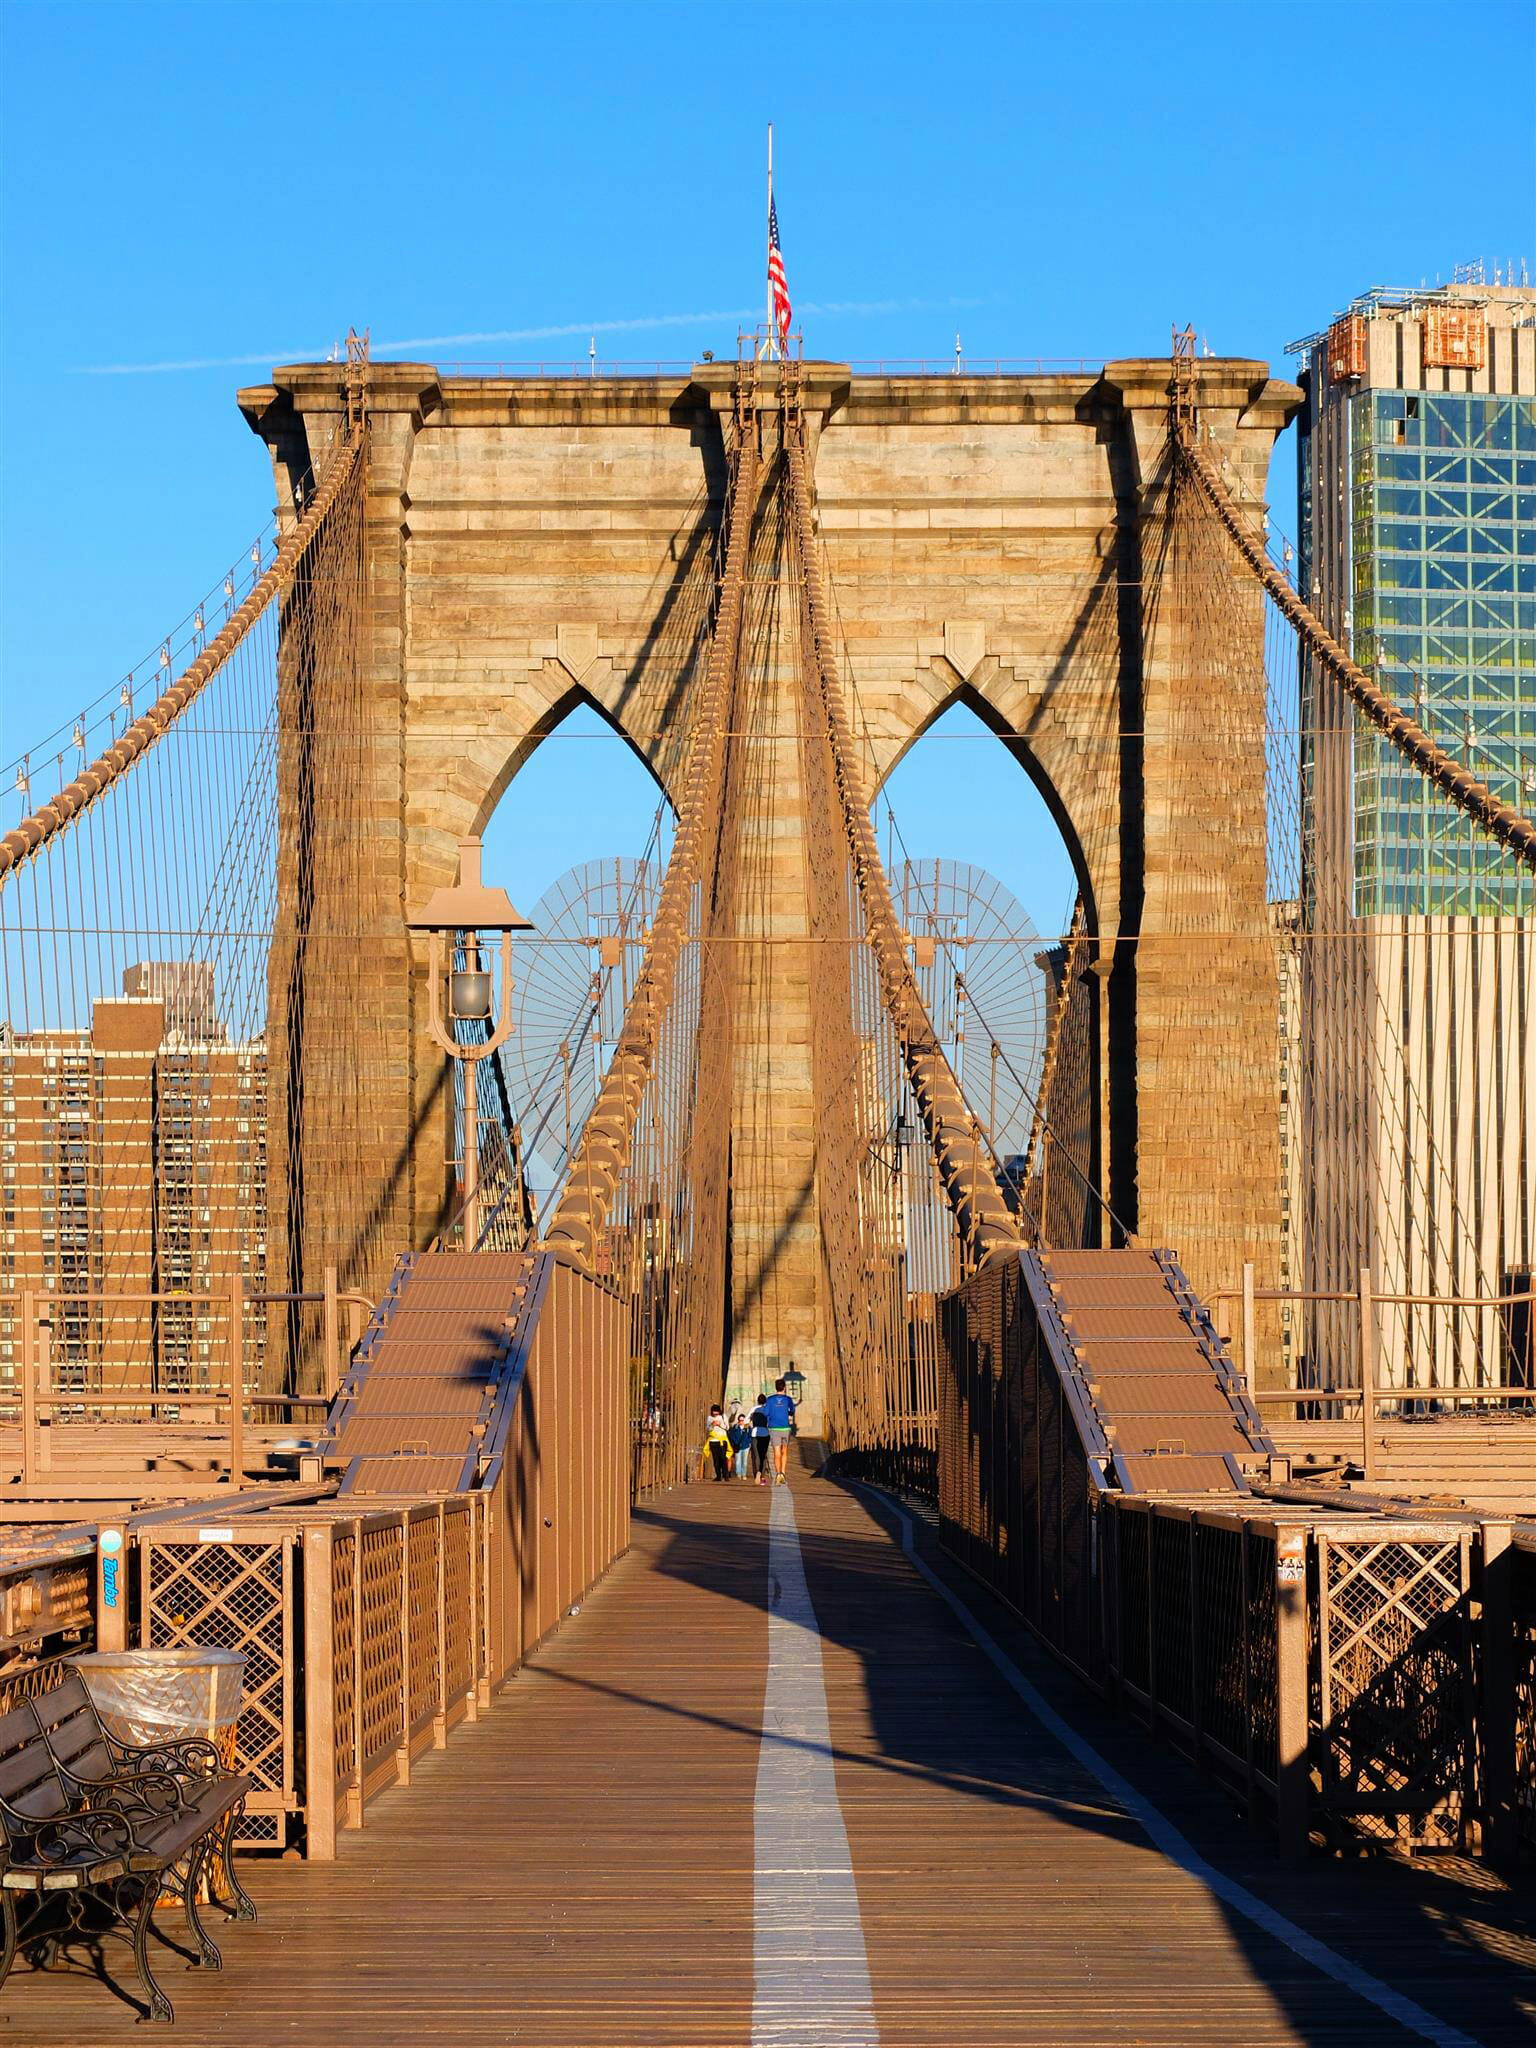 Brooklyn Bridge in New York High Quality Wallpaper